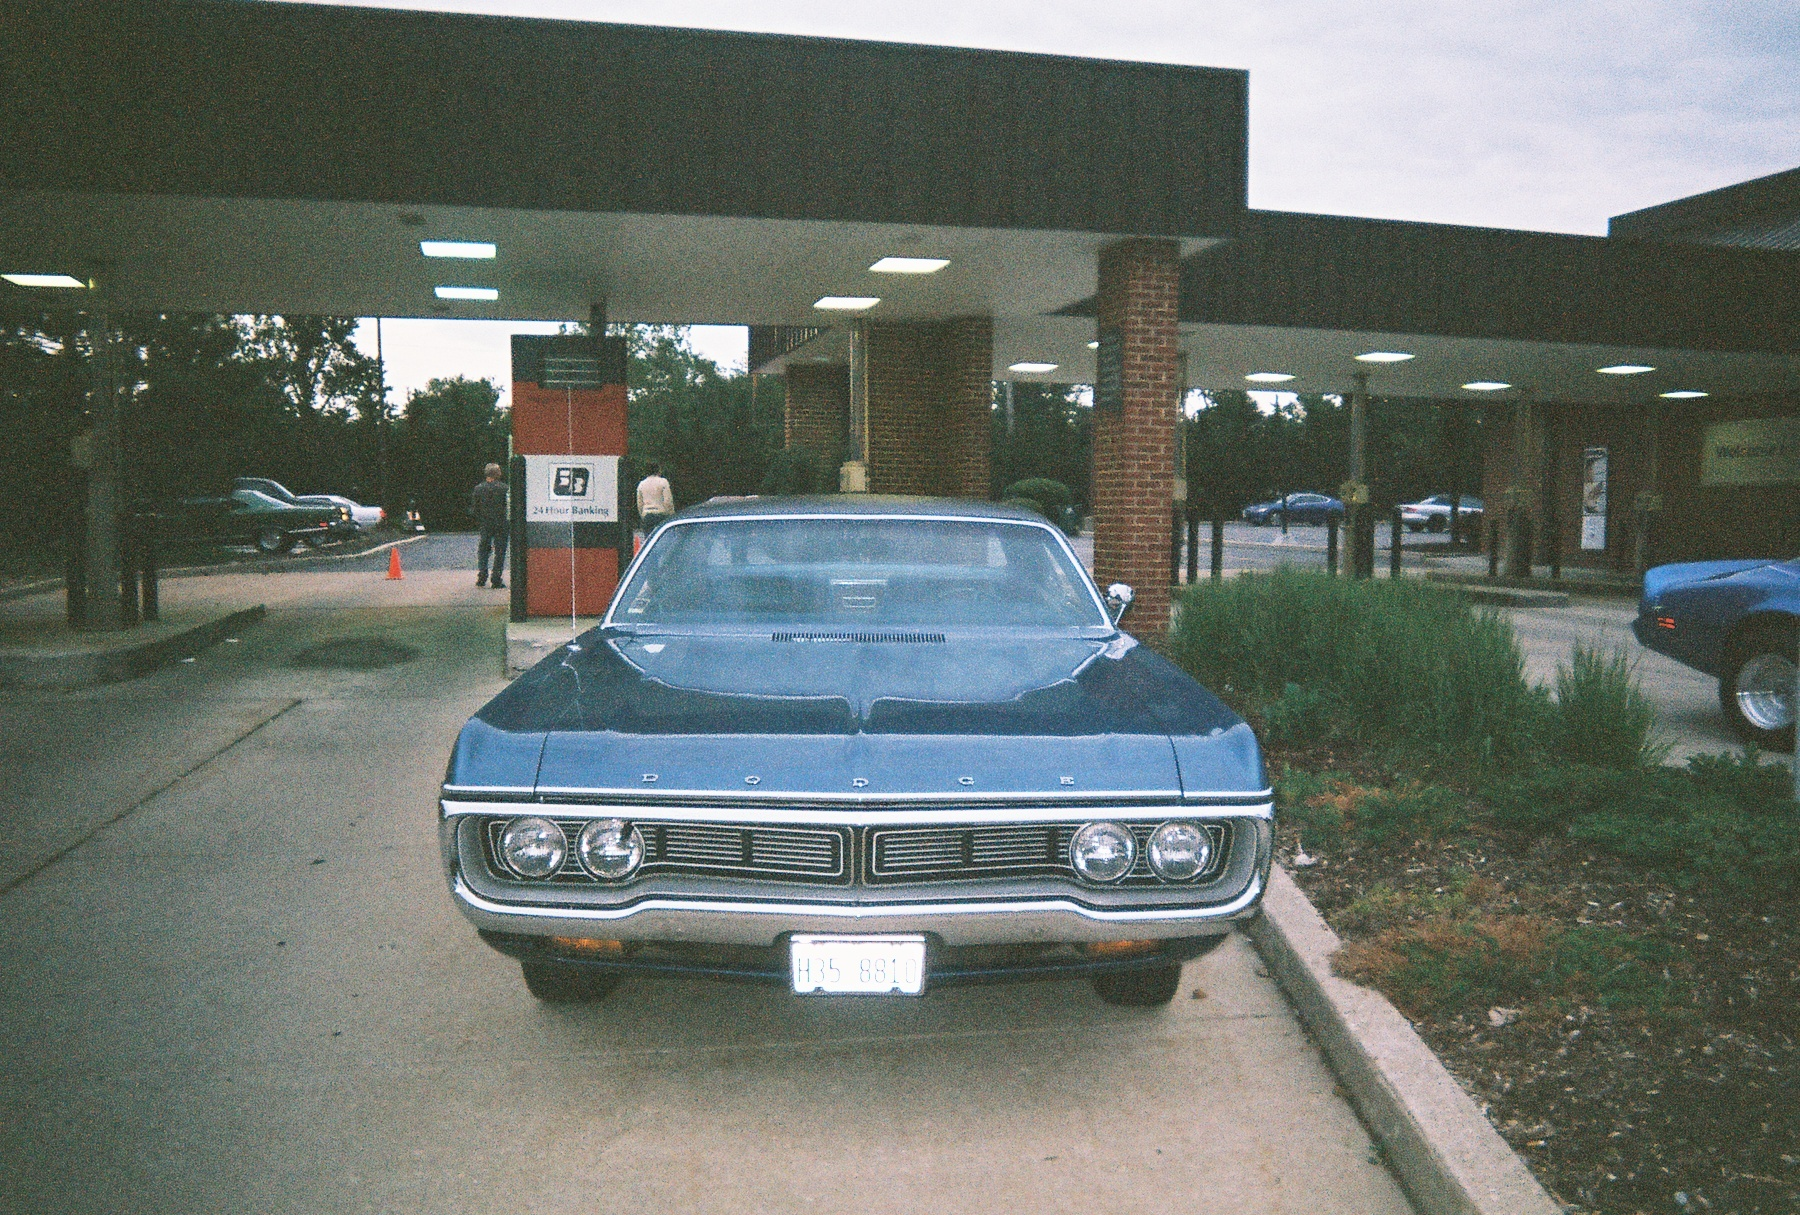 bladeball27's 1970 Dodge Polara